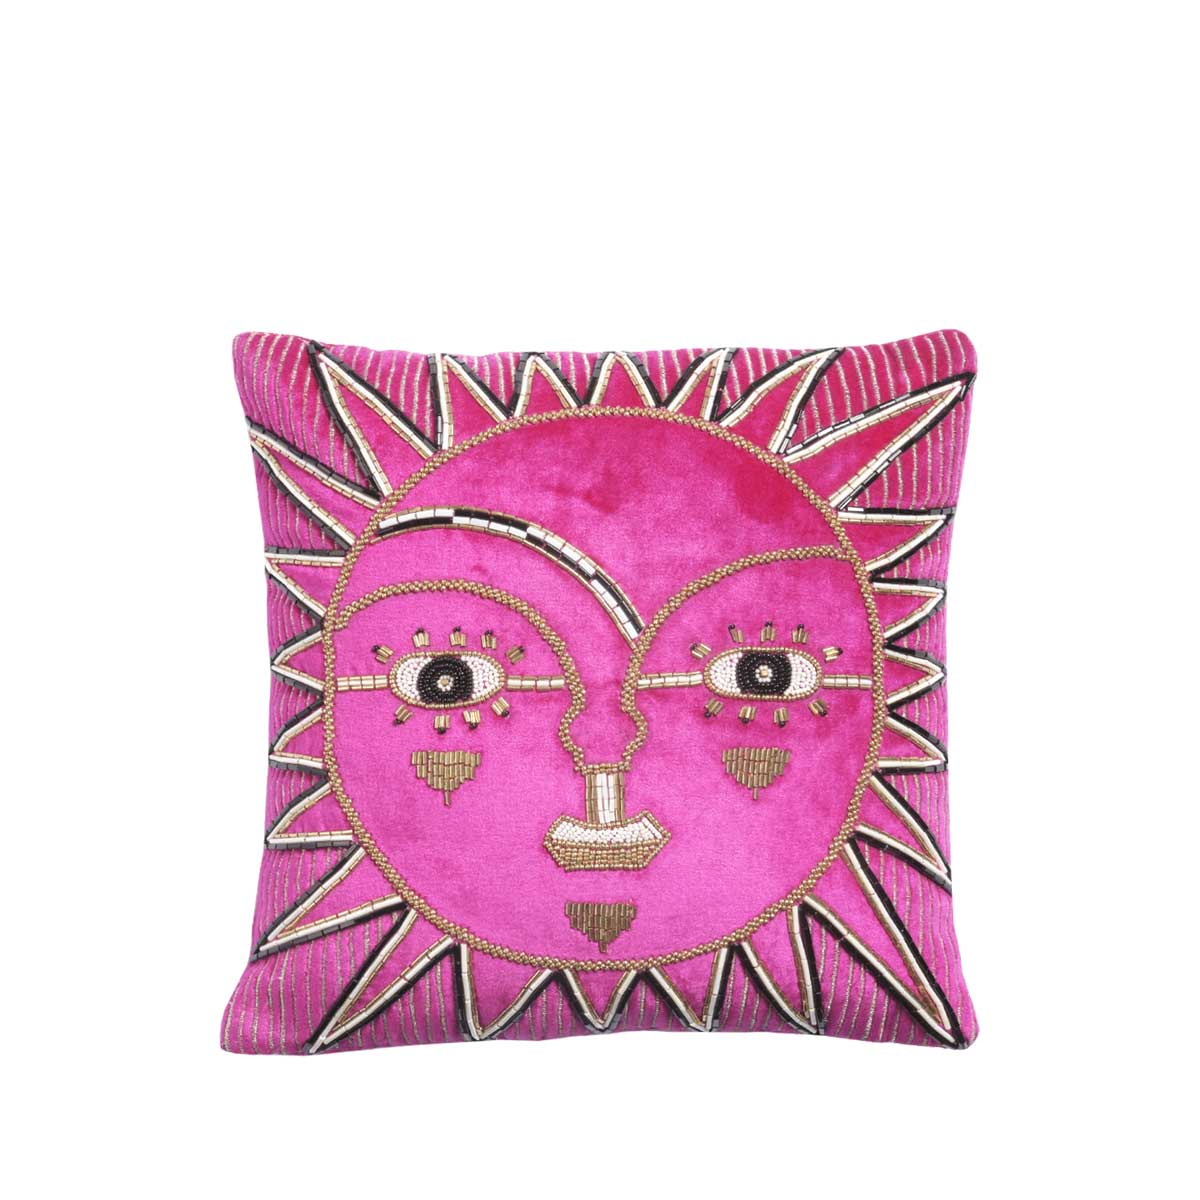 solis velvet cushion cover